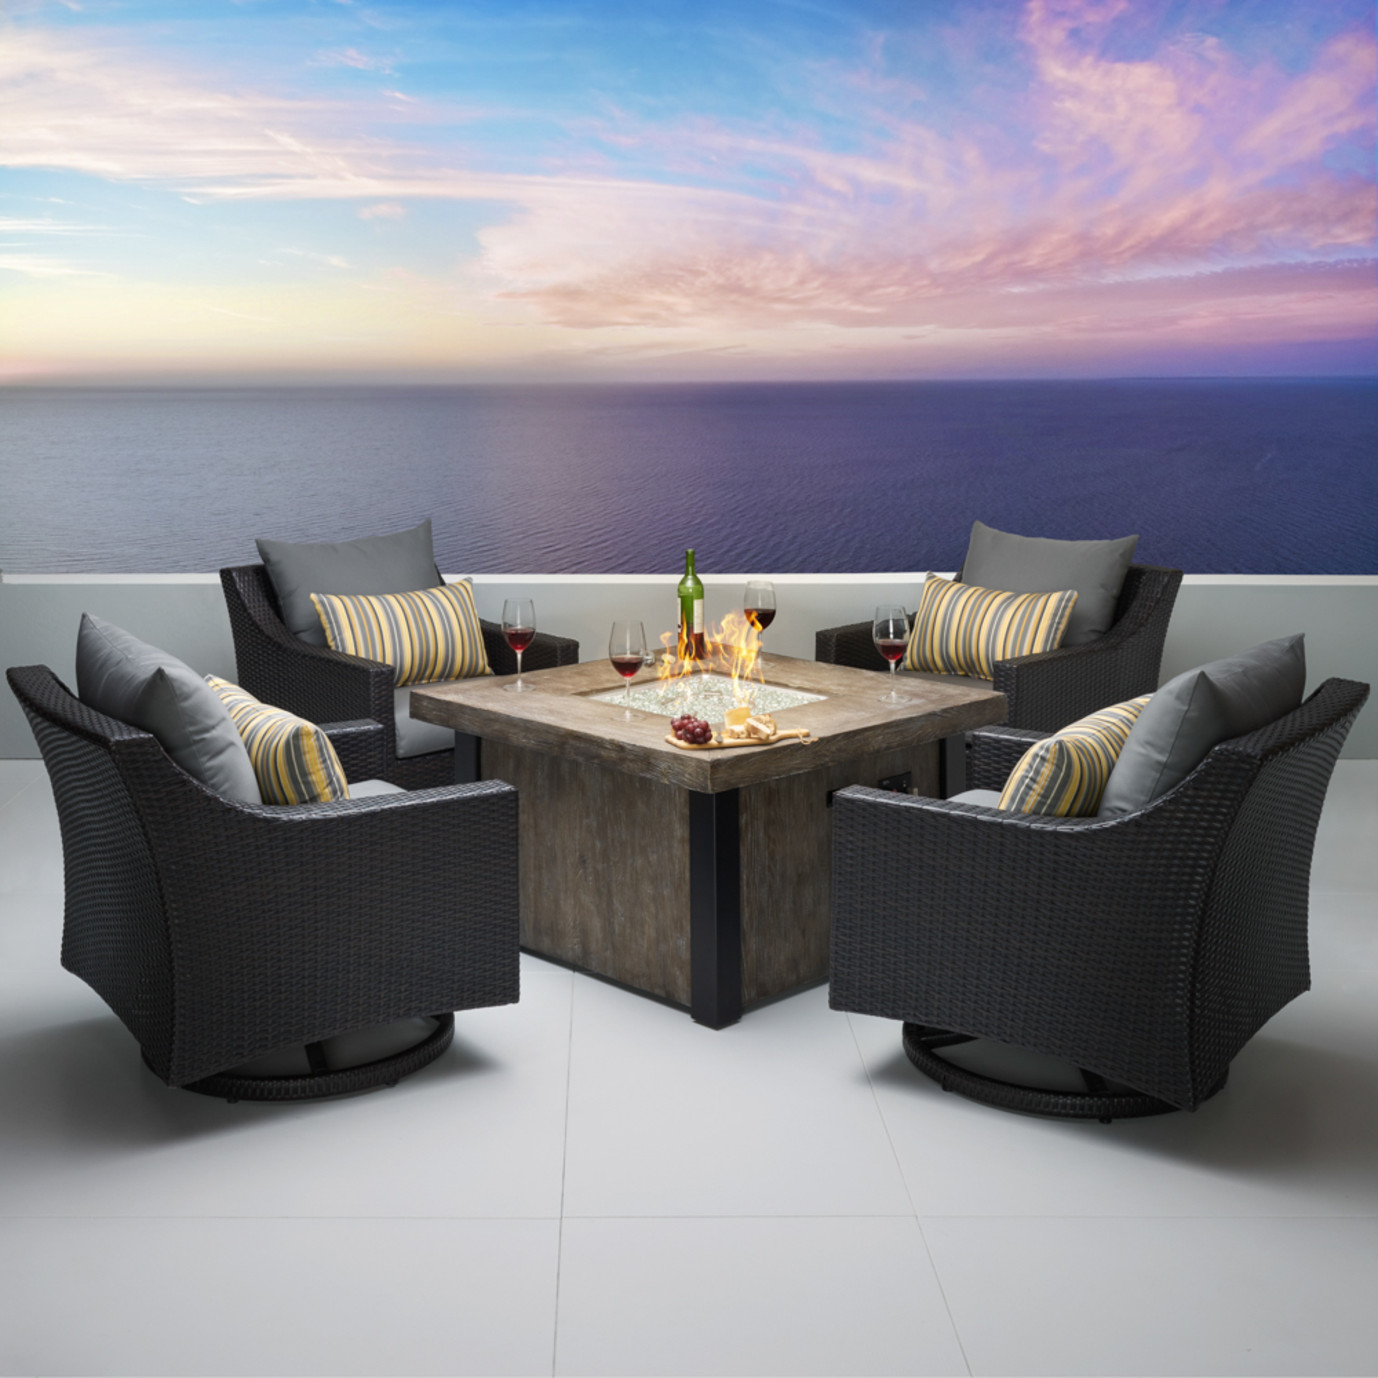 Deco™ 5 Piece Motion Fire Chat Set - Charcoal Gray